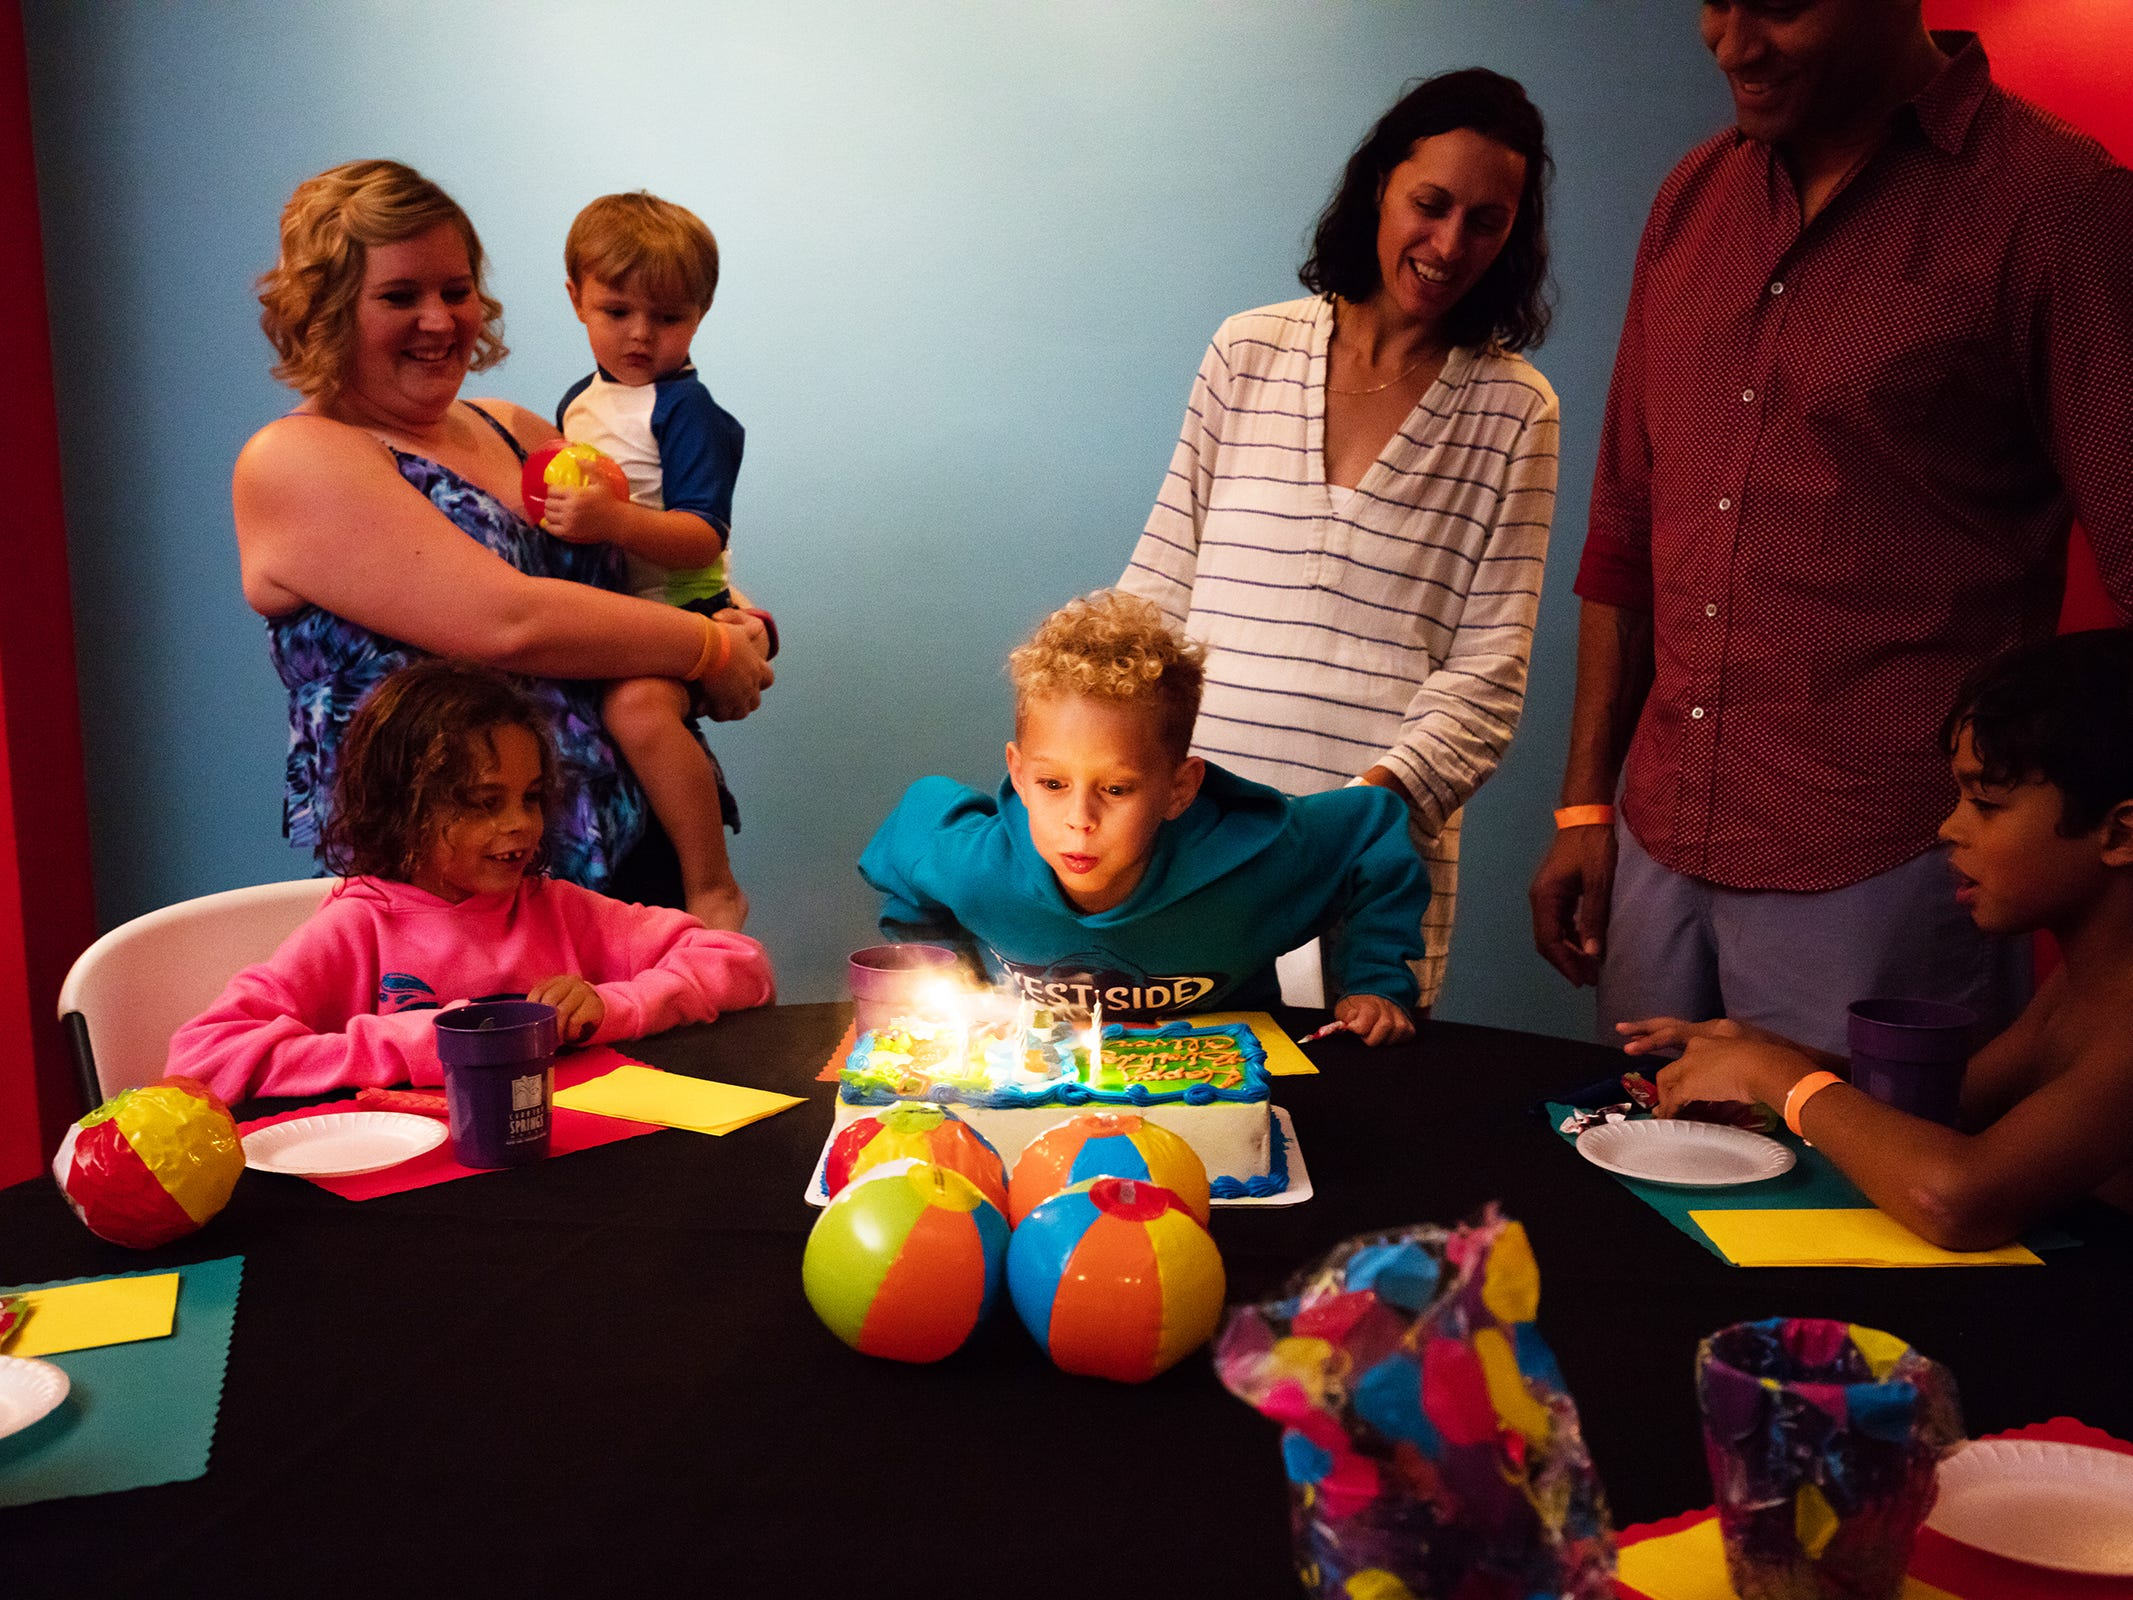 Ingleside Hotel has dedicated party rooms for their water park birthday party packages.